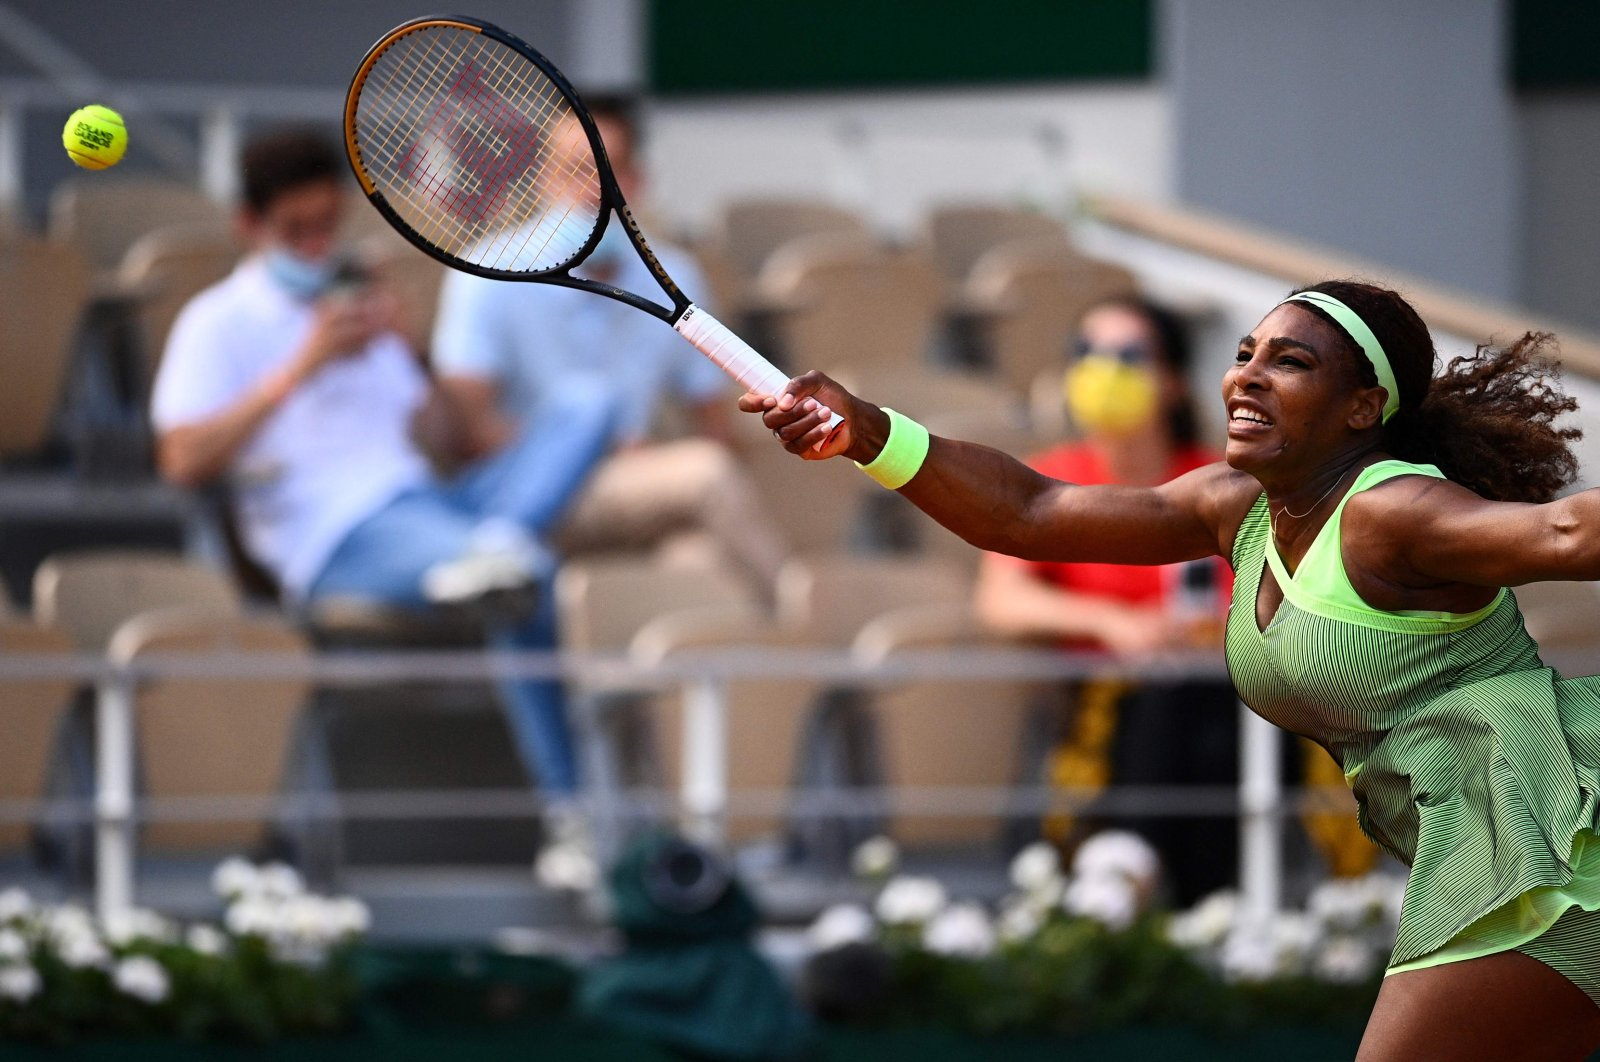 Serena Williams of the U.S. returns the ball to Kazakhstan's Elena Rybakina during their women's singles fourth round tennis match on Day 8 of The Roland Garros 2021 French Open tennis tournament in Paris, June 6, 2021. (AFP Photo)